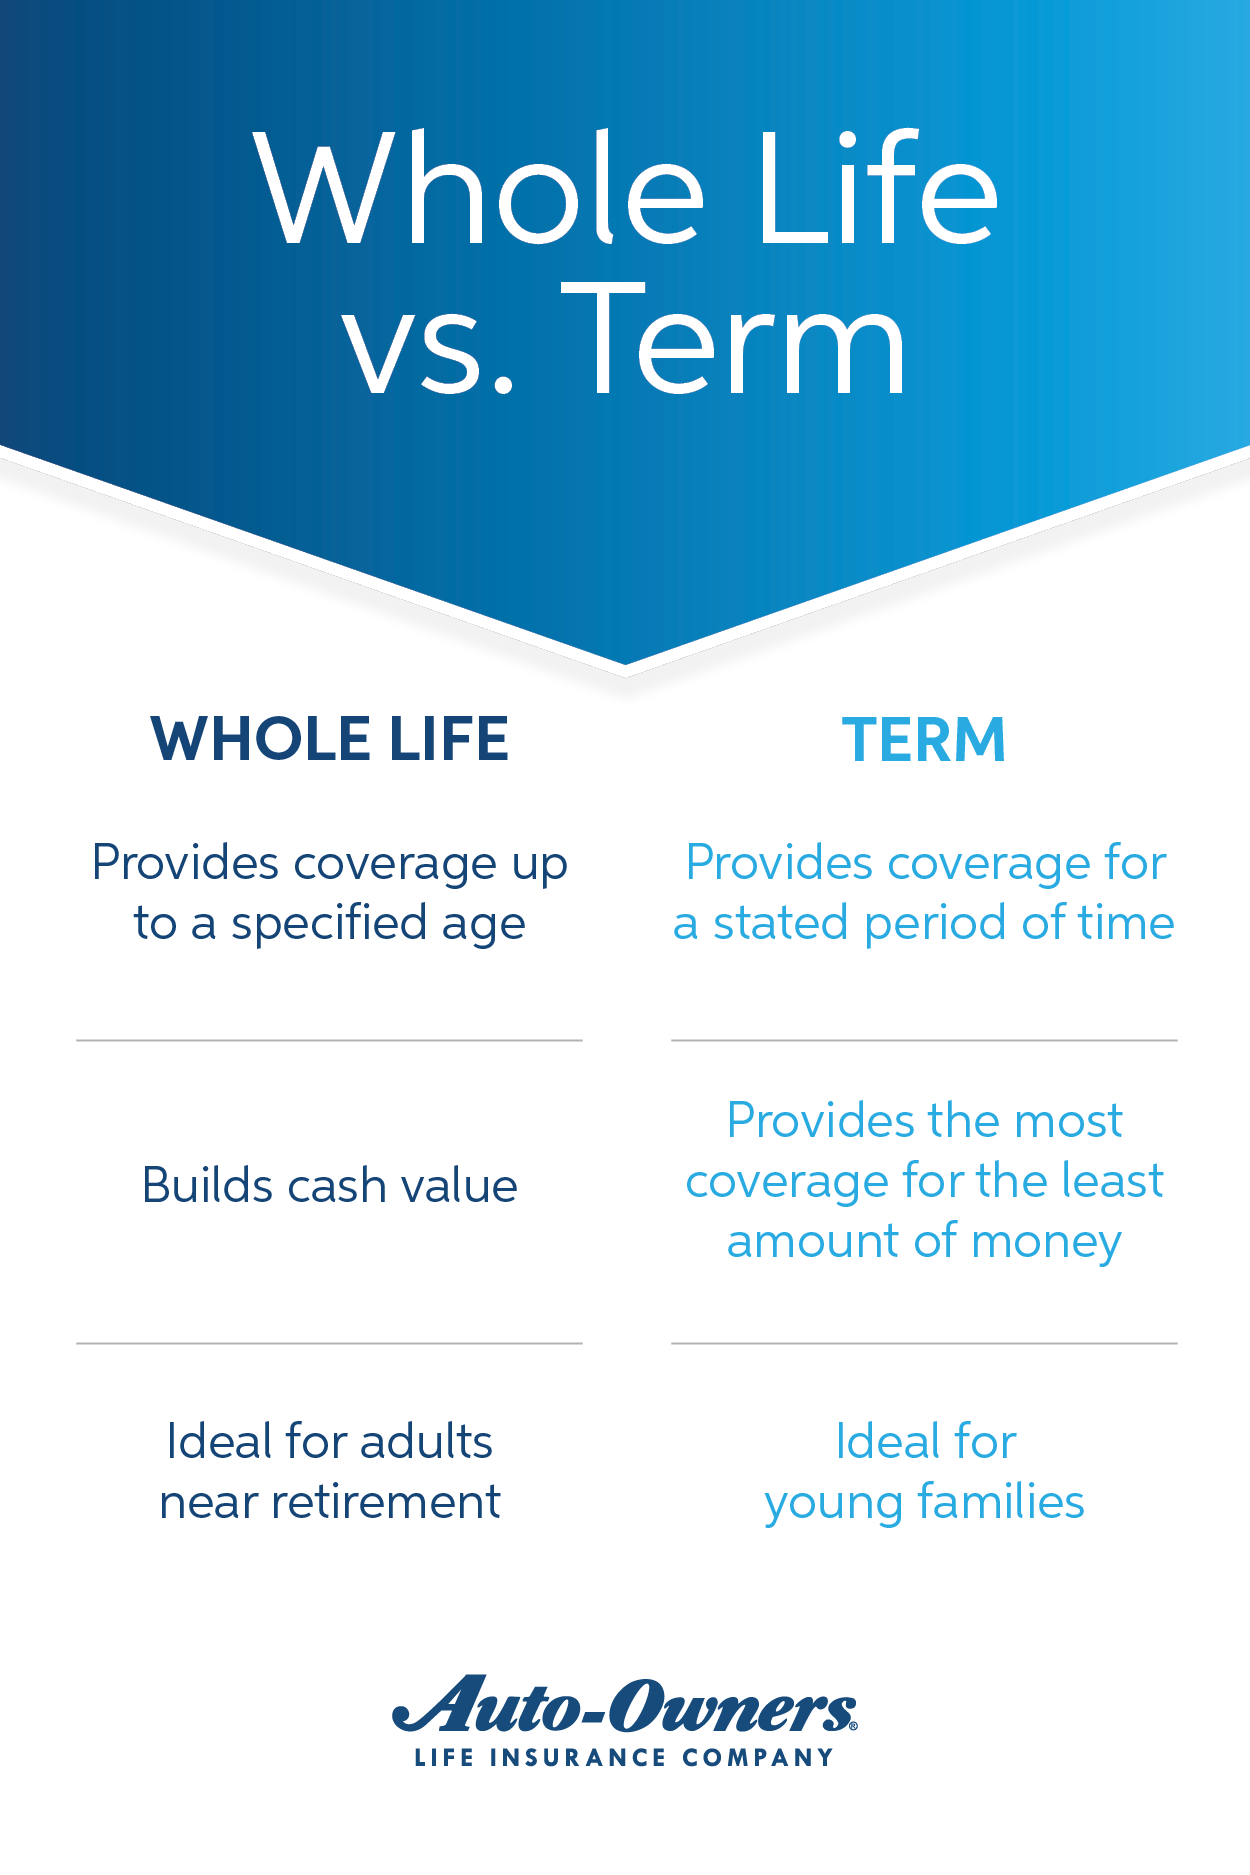 Use this sidebyside comparison of Whole Life insurance